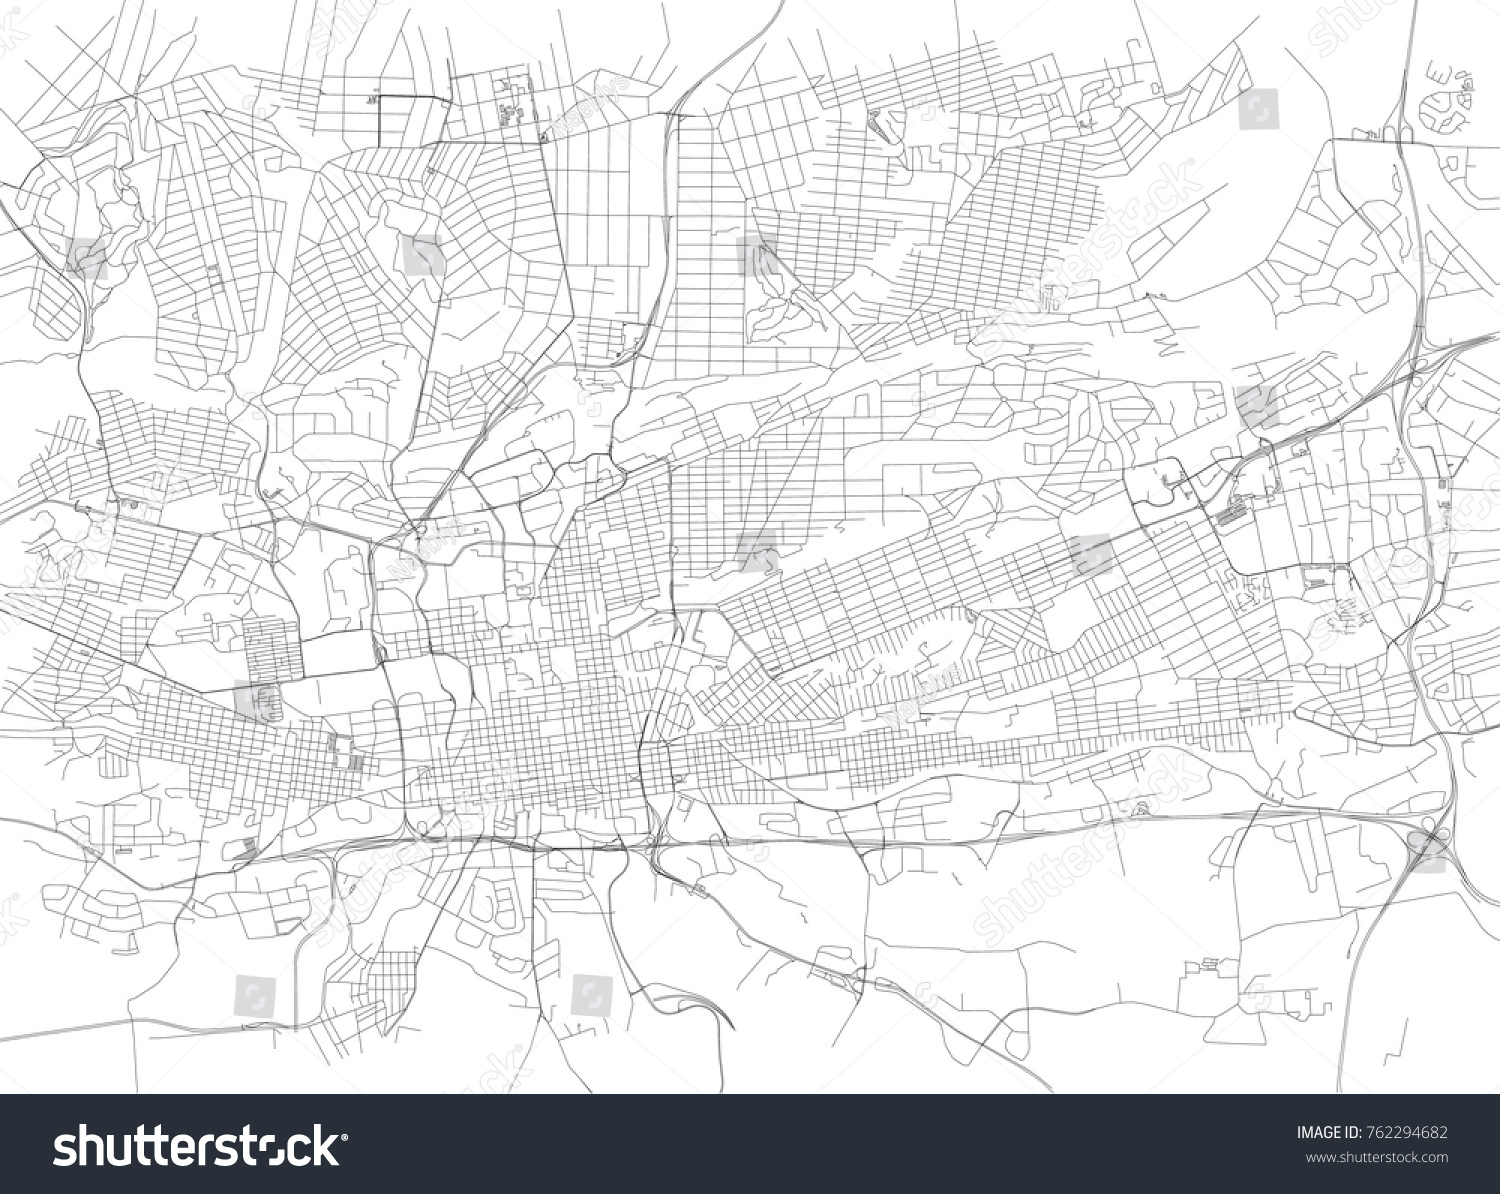 Streets Johannesburg City Map South Africa Stock Vector HD Royalty